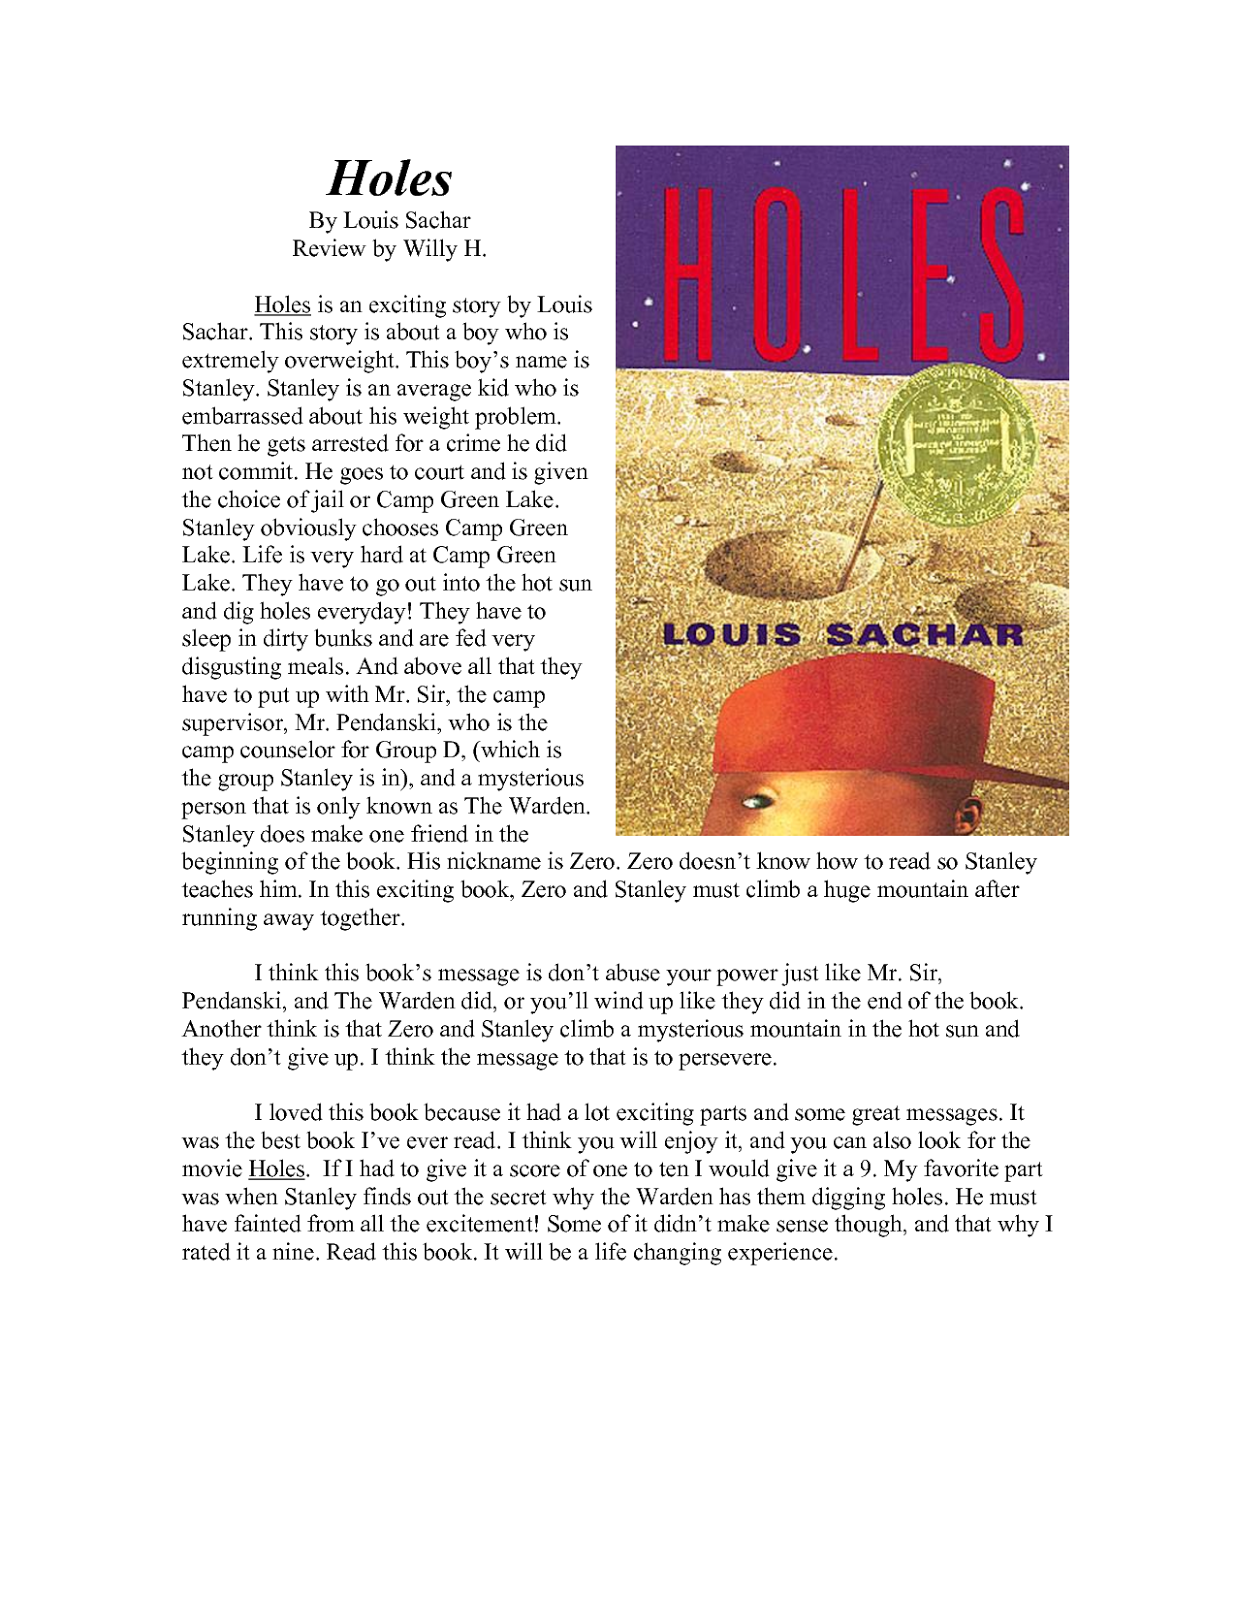 """A book report on the book """"Holes"""" by Louis Sachar Essay Sample"""